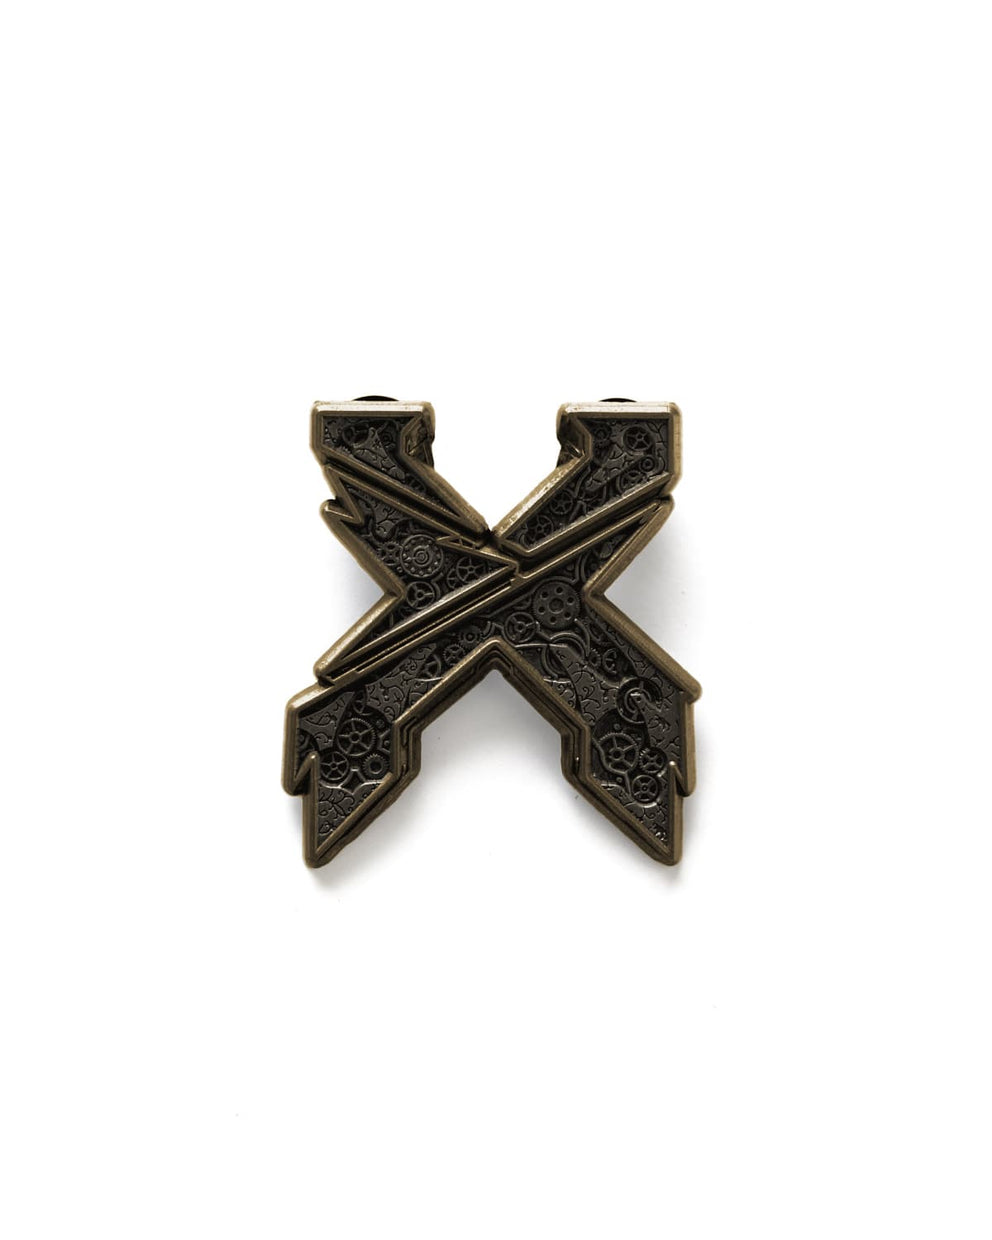 Excision 'Mech' Logo Pin - Antique Gold